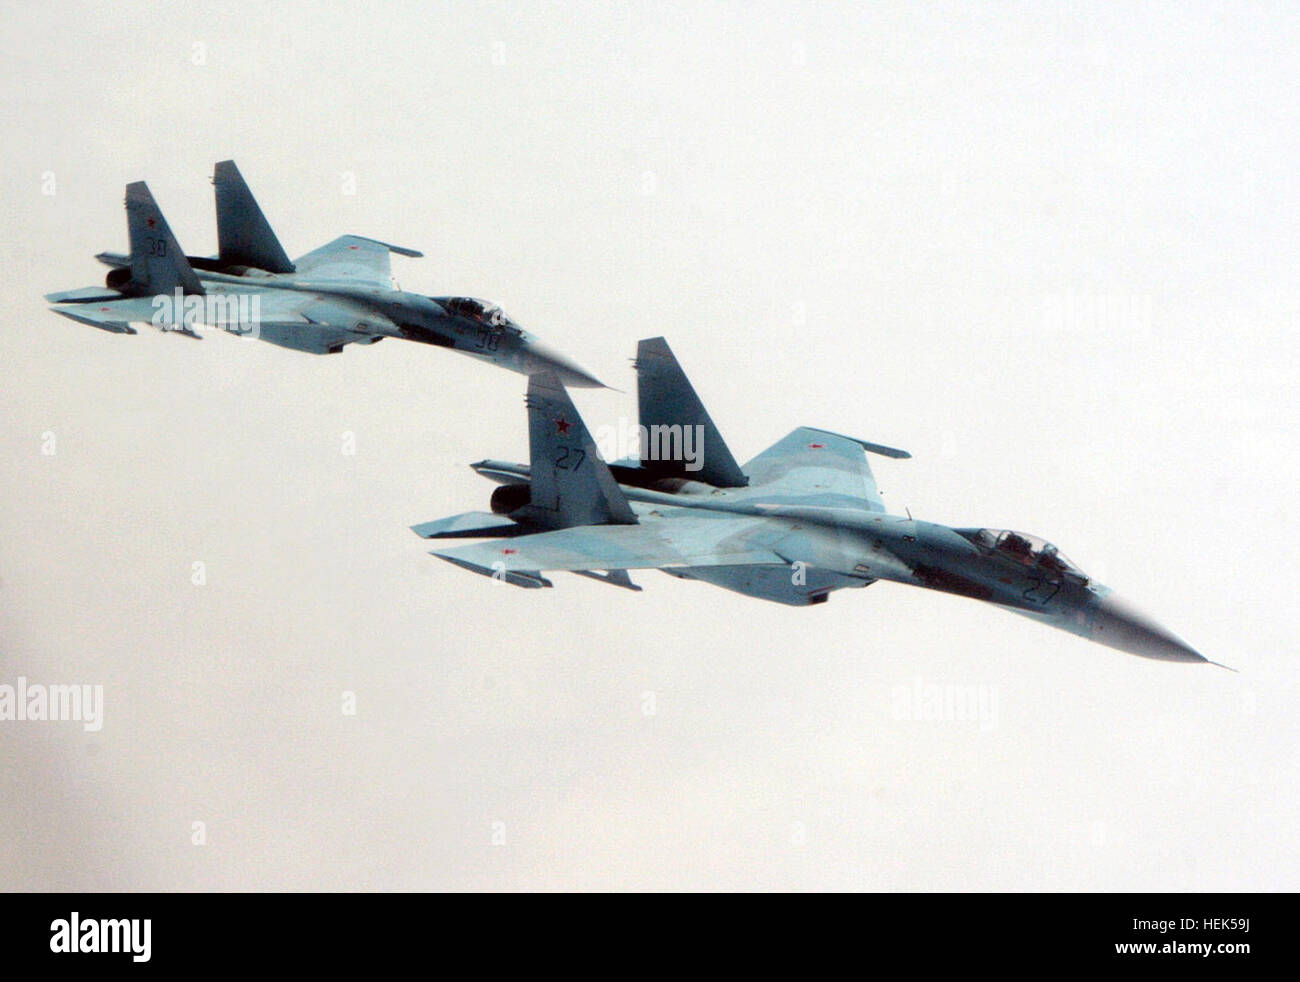 A pair of Russian Air Force Su-27 Flanker aircraft intercept a simulated hijacked Gulfstream G-400 (G-IV) aircraft - Stock Image